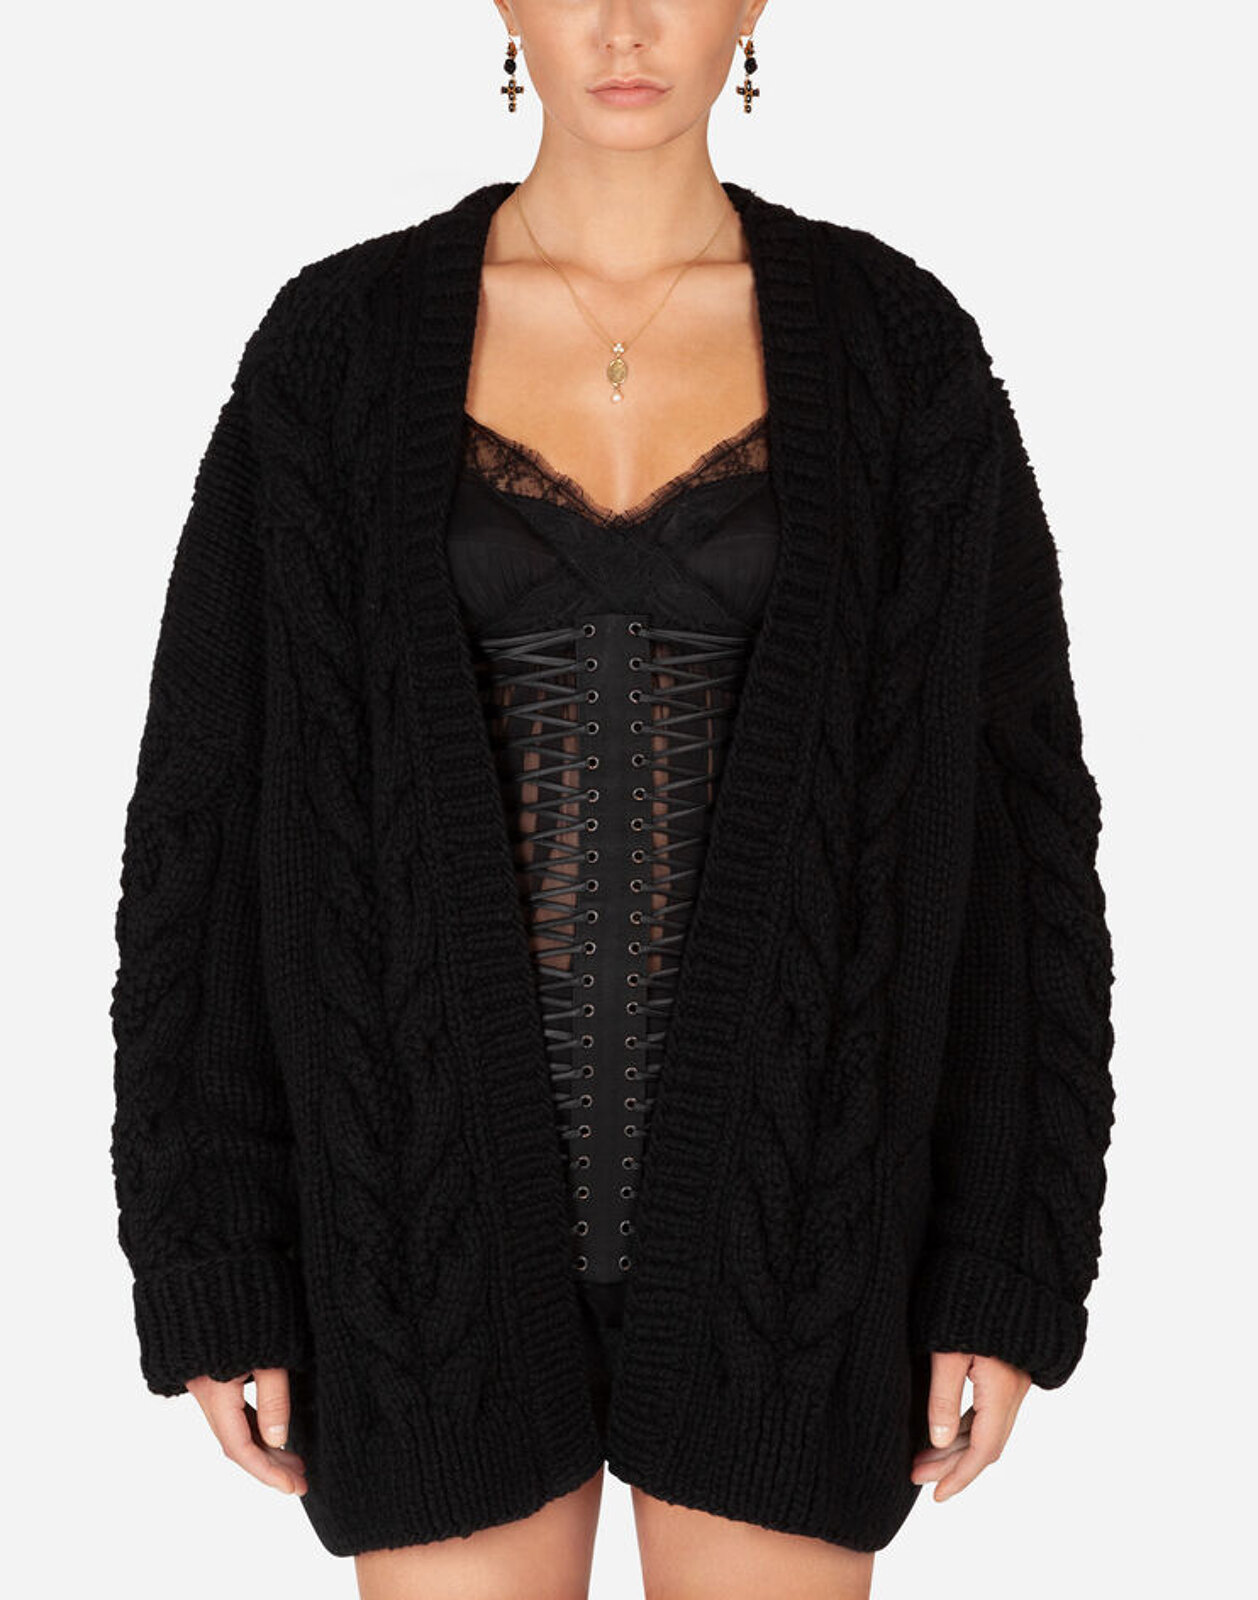 Long Sleeved Wool And Cashmere Cardigan - Dolce & Gabbana